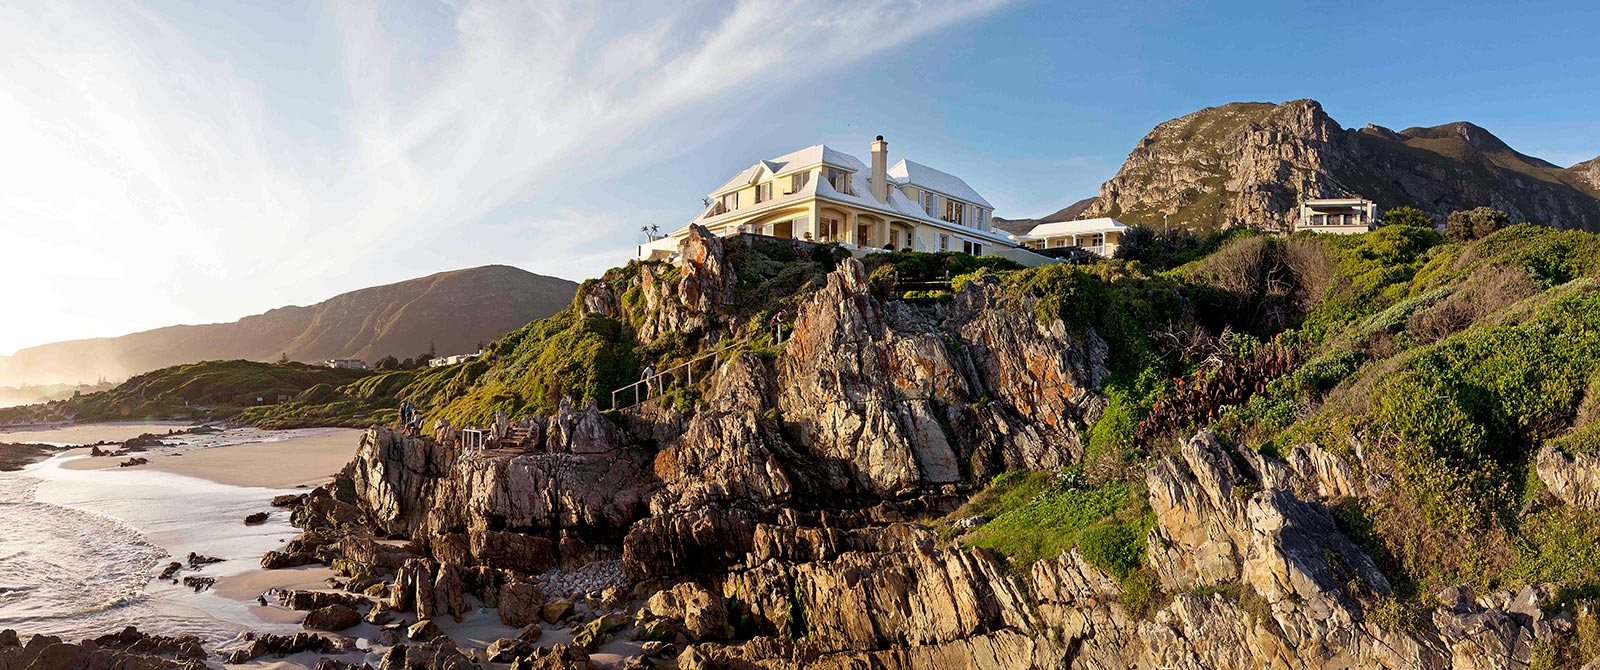 South Africa Garden Route Package - Birkenhead House, Luxury Hotel in Hermanus